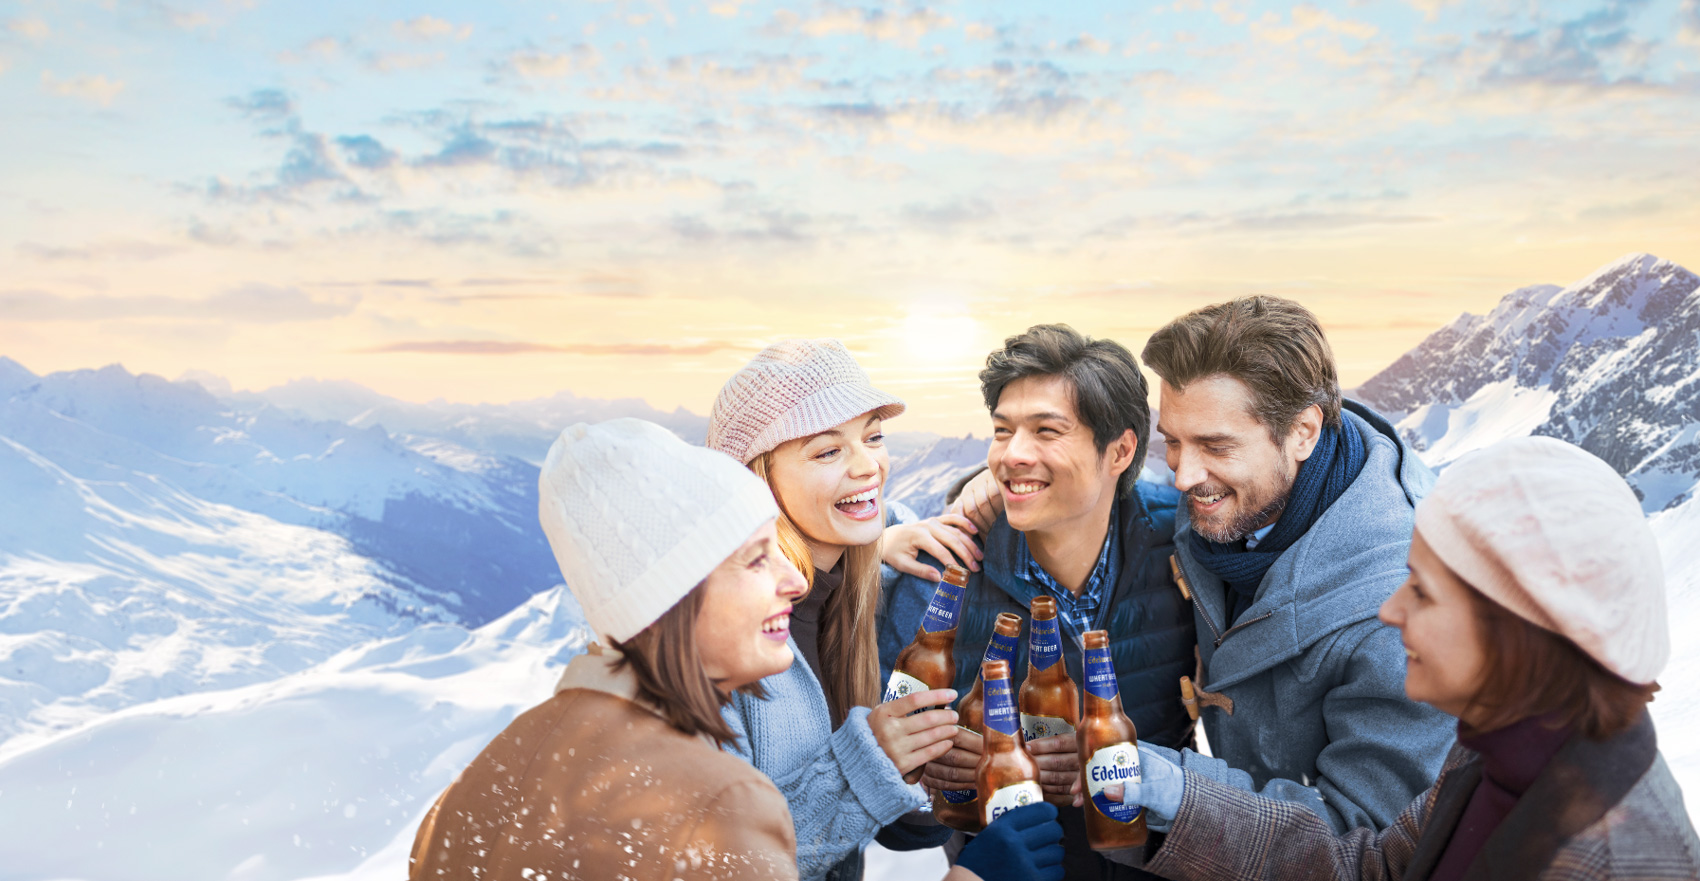 Thedrum: How Asia Pacific Breweries Singapore took the Alps to Asia for its Edelweiss launch